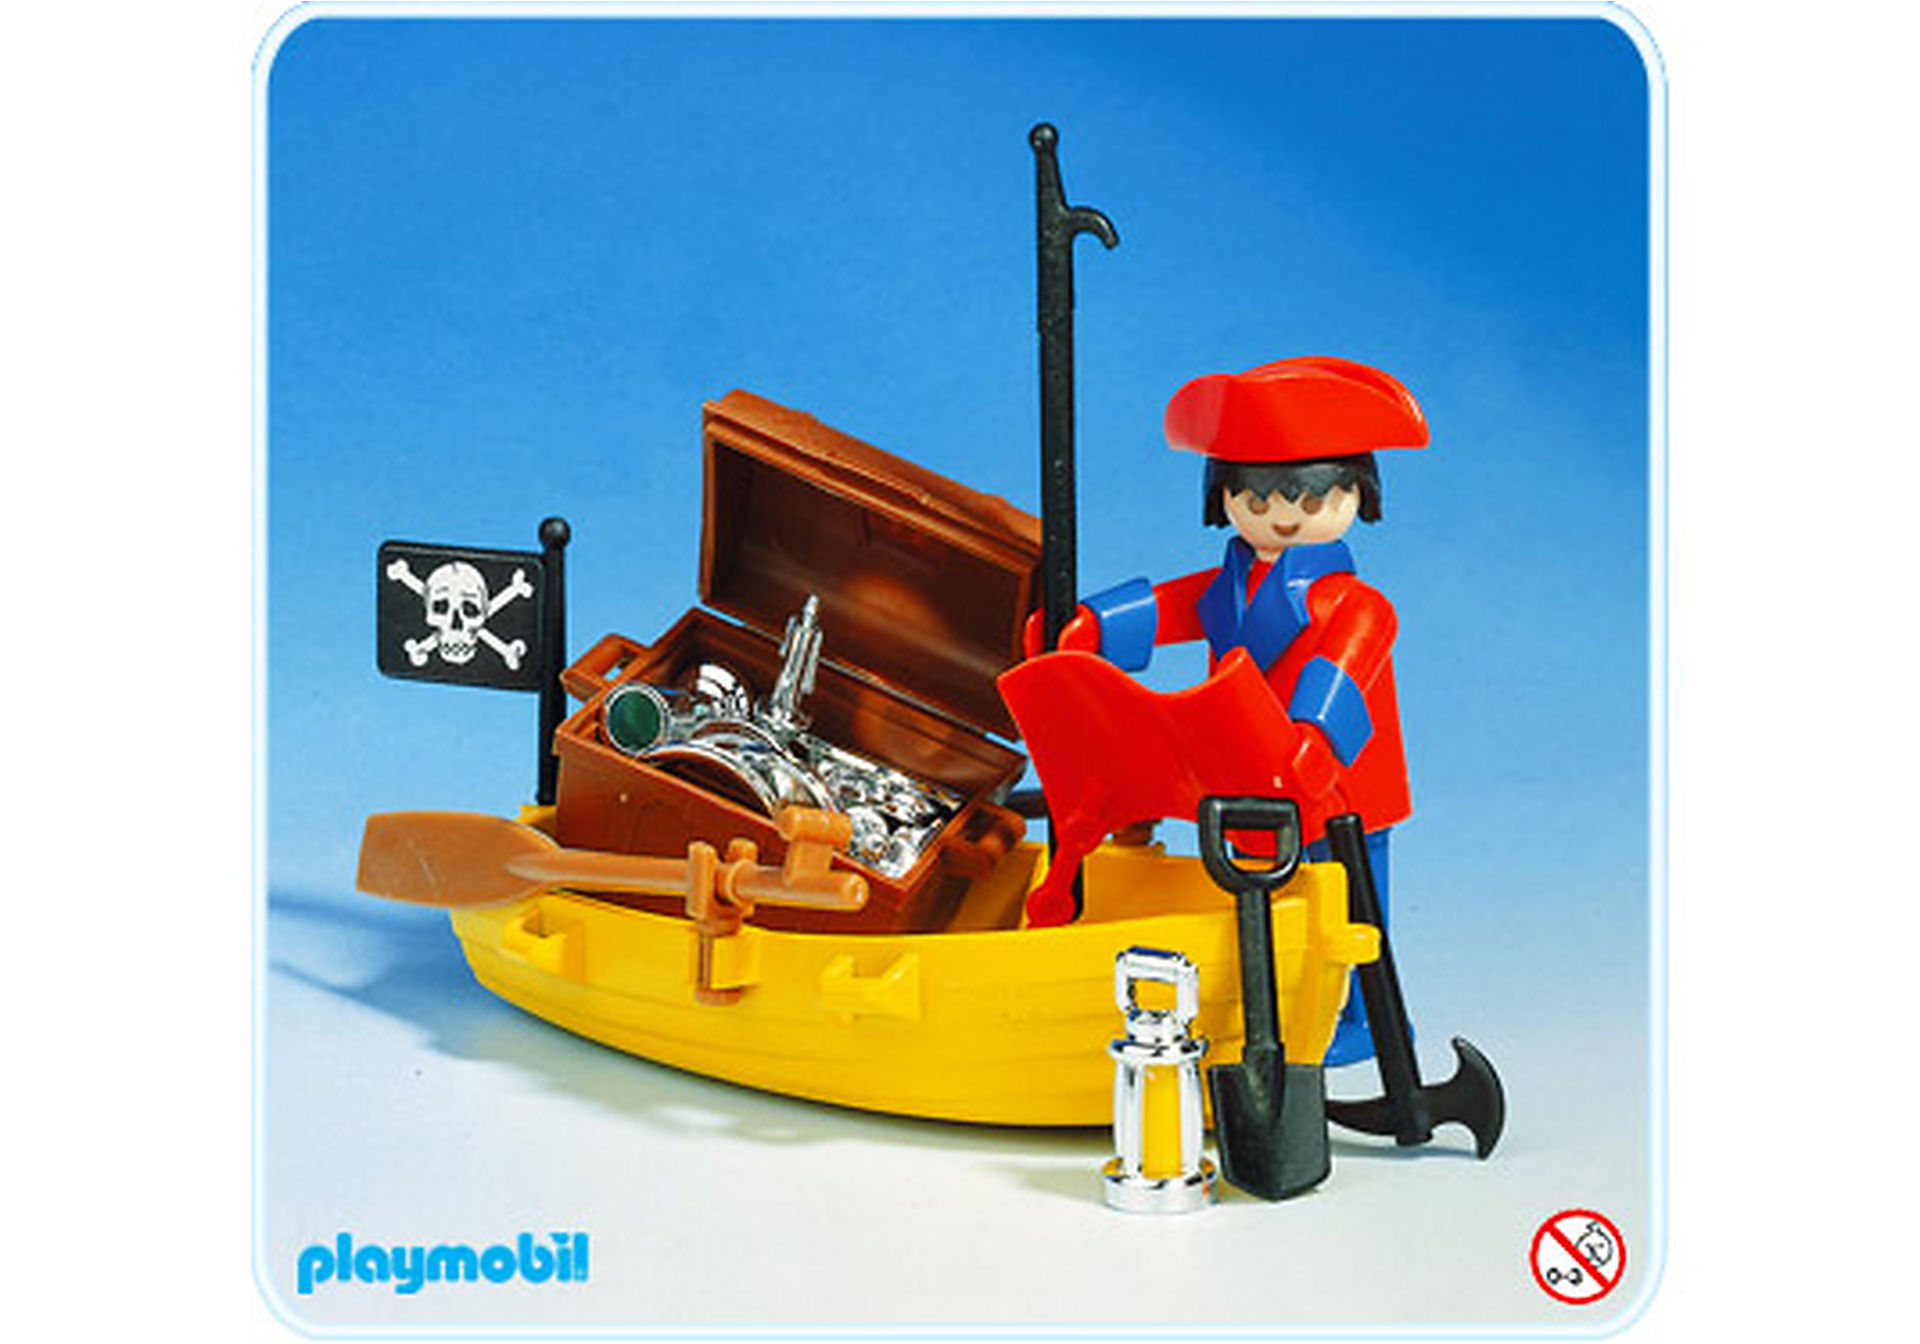 http://media.playmobil.com/i/playmobil/3570-A_product_detail/Pirate avec barque